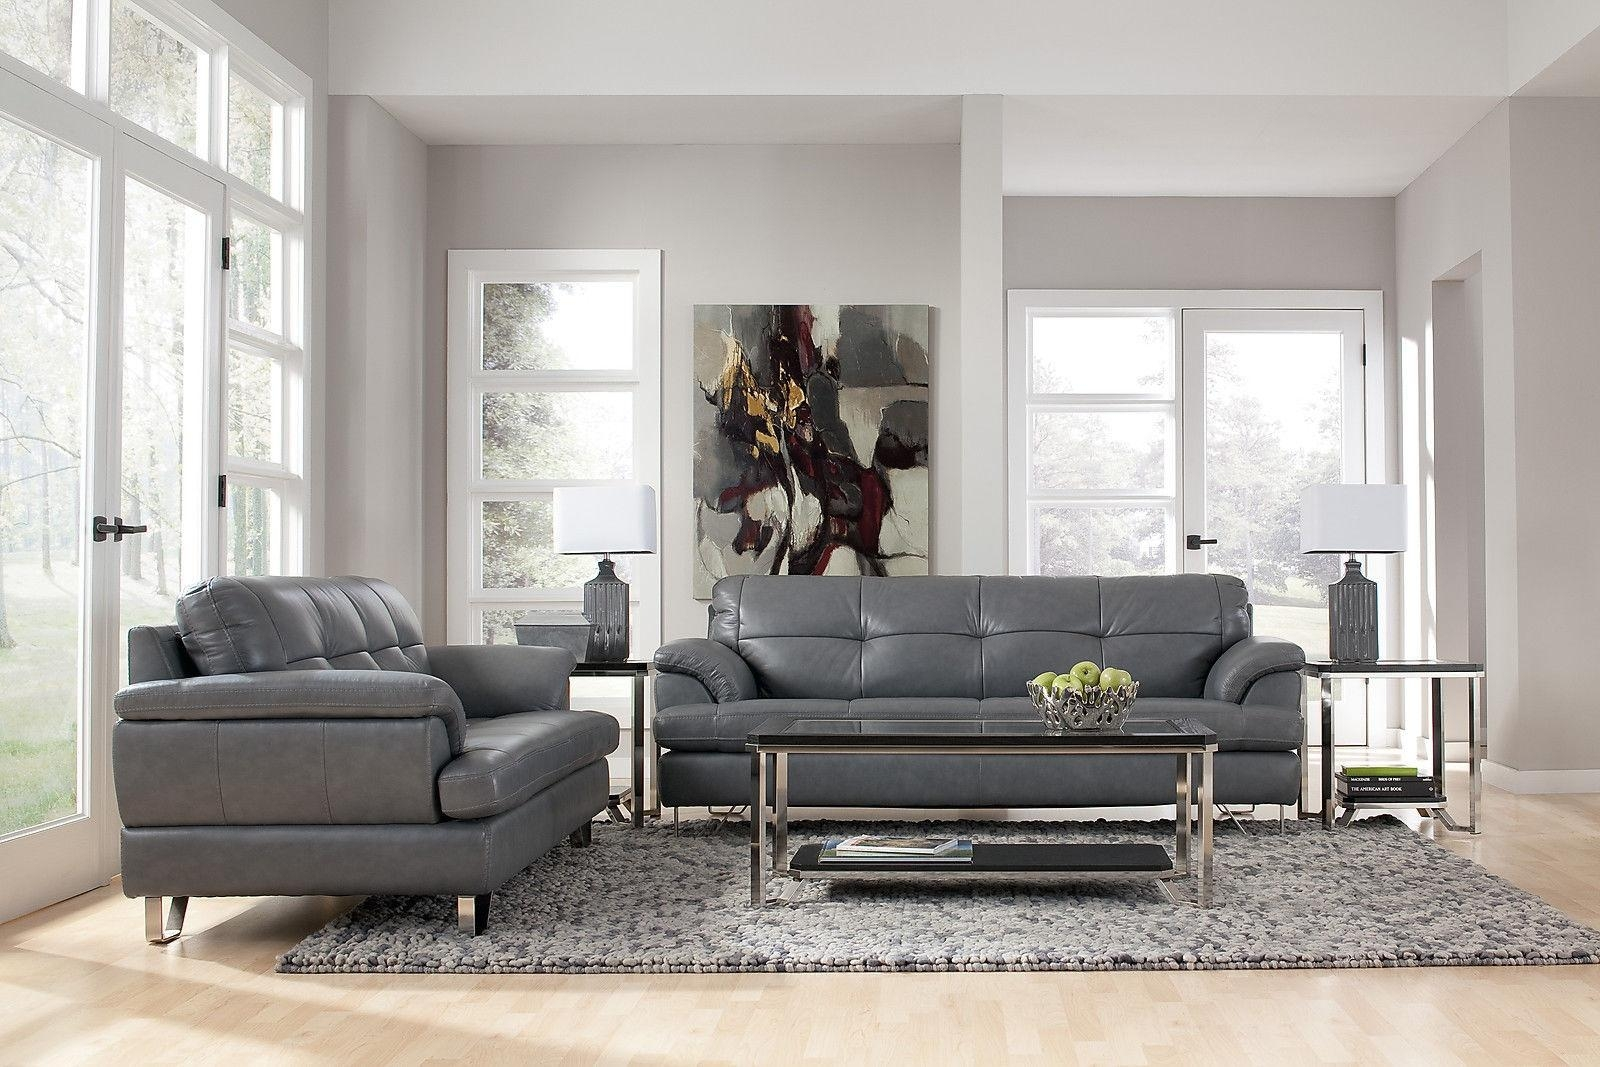 Grey Leather Furniture, Charcoal Leather Sofa Grey Leather Sofas For Charcoal Grey Leather Sofas (View 13 of 20)